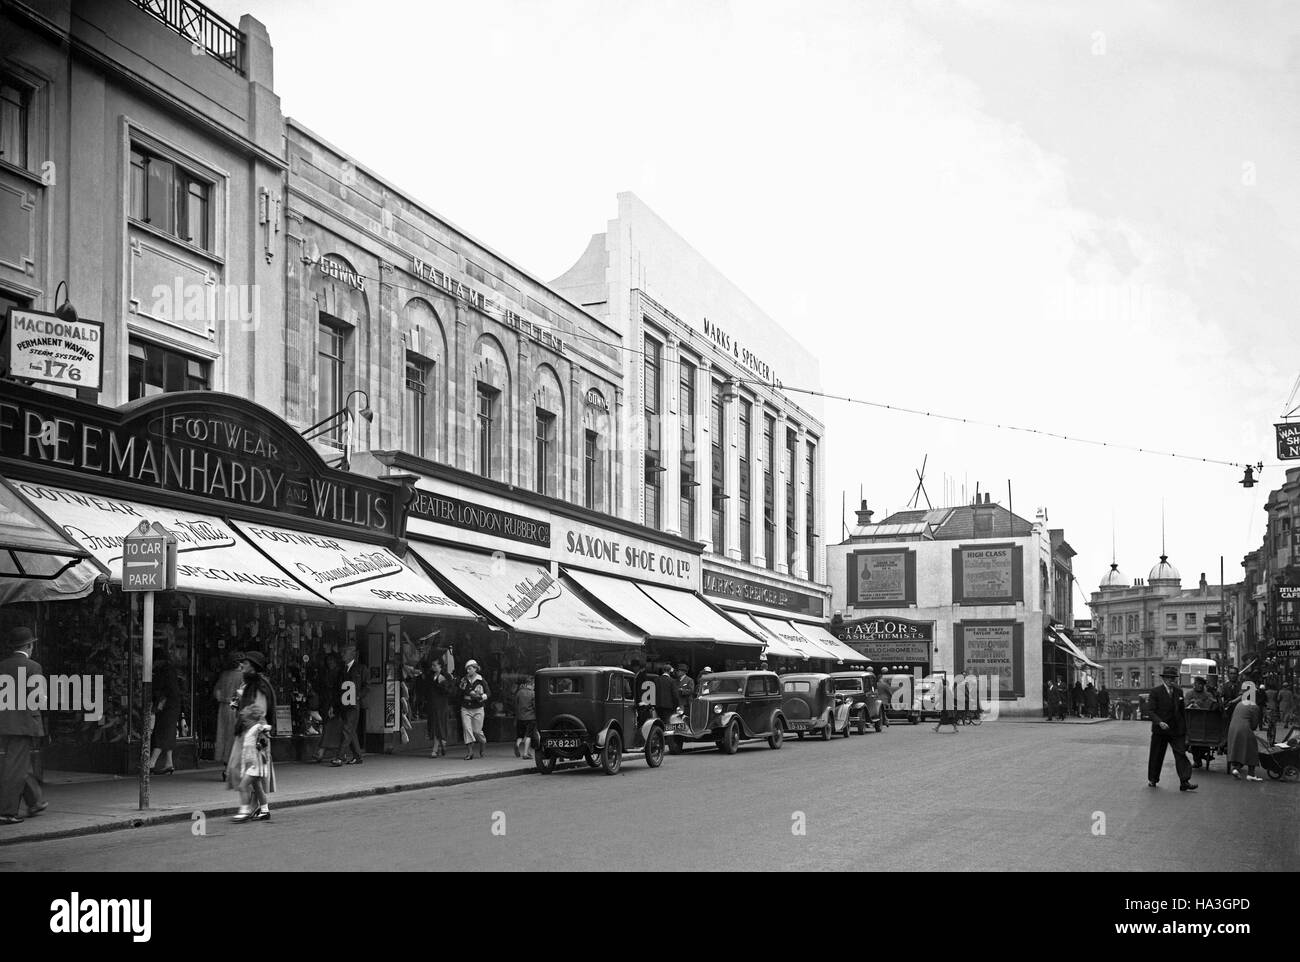 Shops and shoppers at the eastern end of Western Road, Brighton, East Sussex, England, c.1935 - shops include Marks - Stock Image